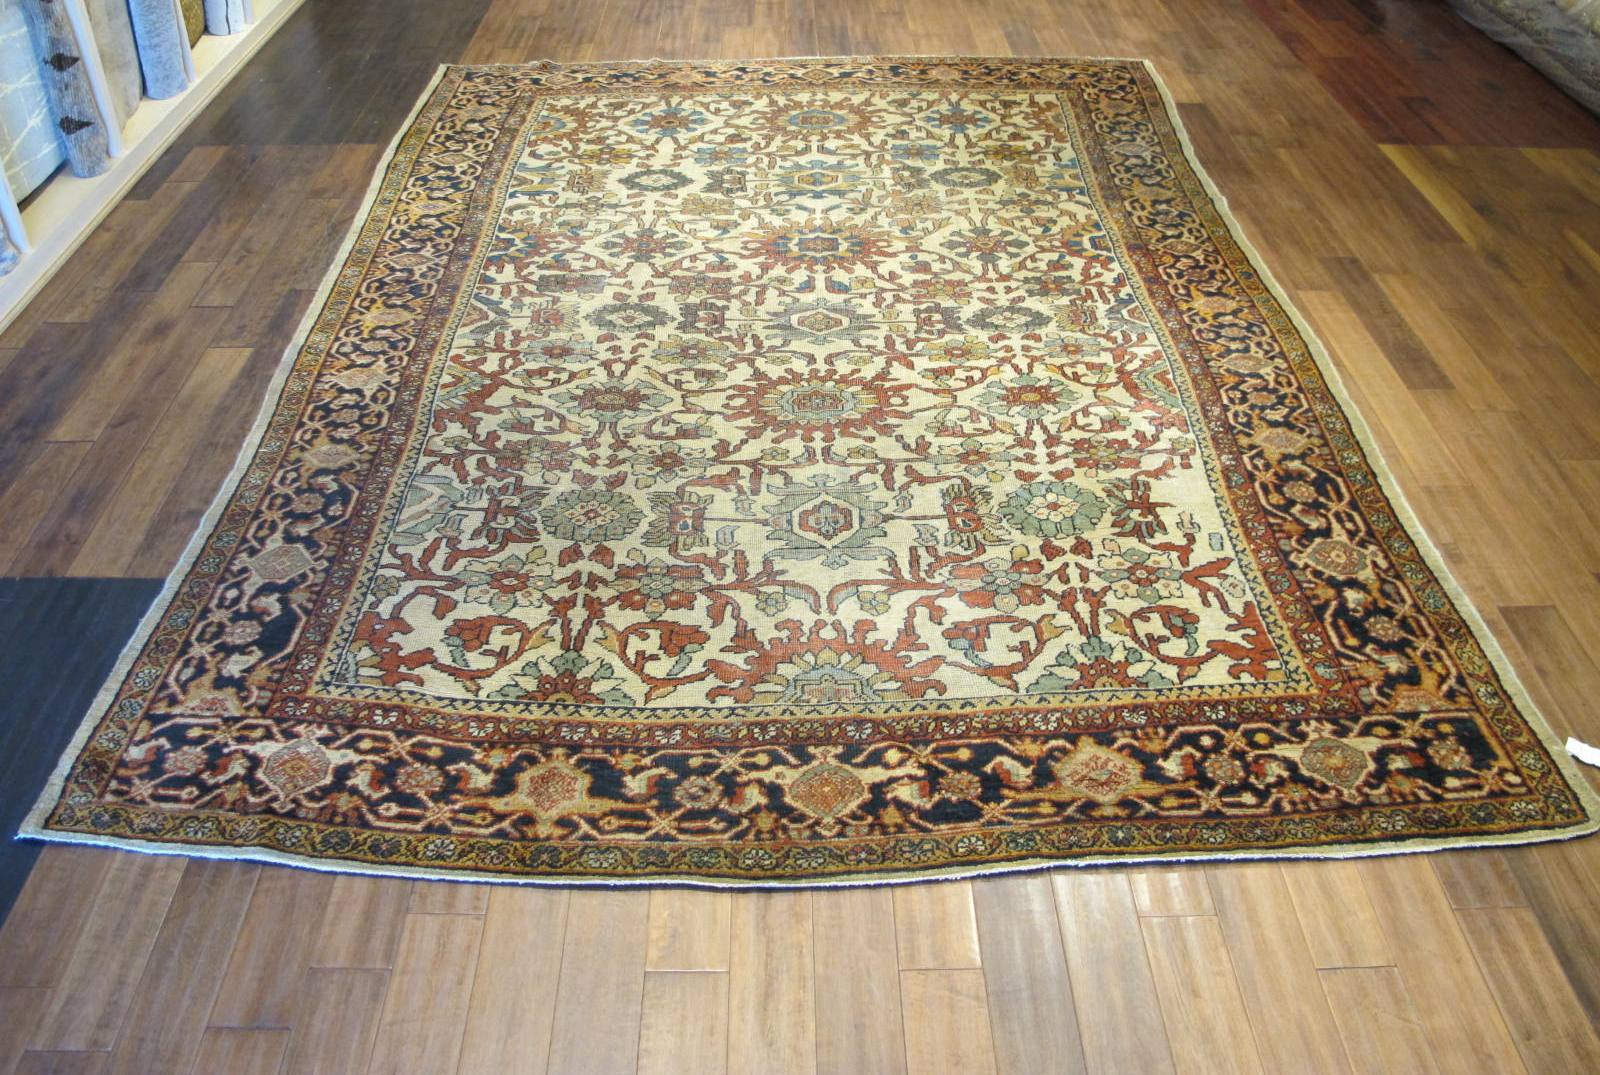 21432 antique persian mahal rug 8,9x12,4 (2)